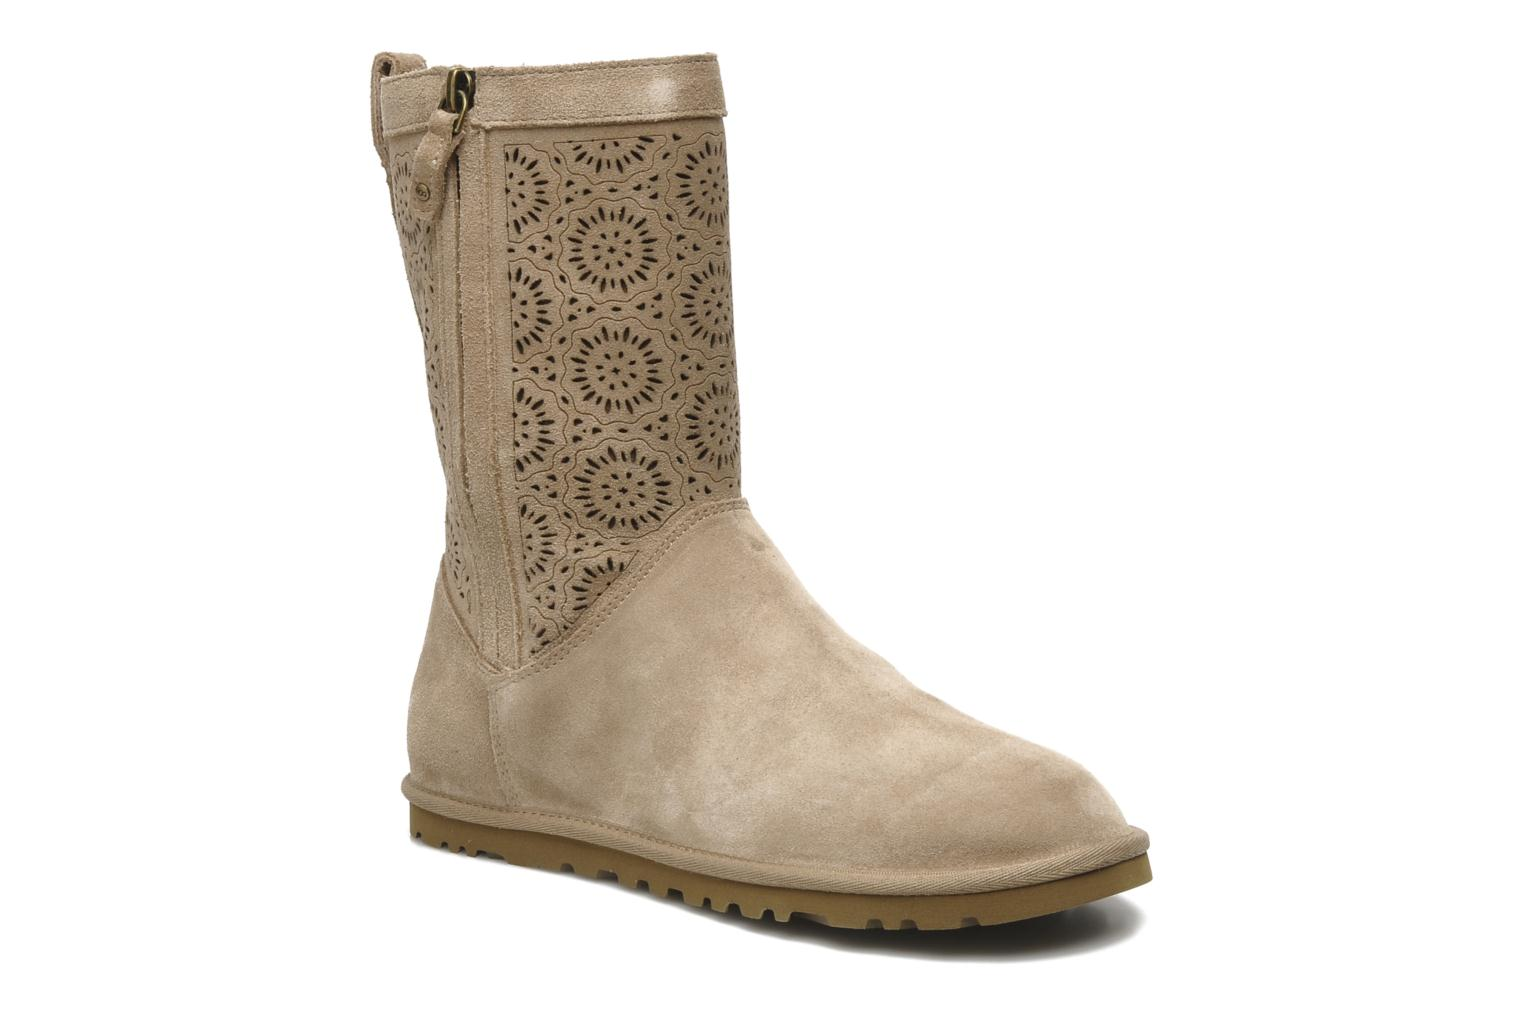 03f8001ded4 Womens Ugg Australia Lo Pro Perforated Boots - cheap watches mgc-gas.com